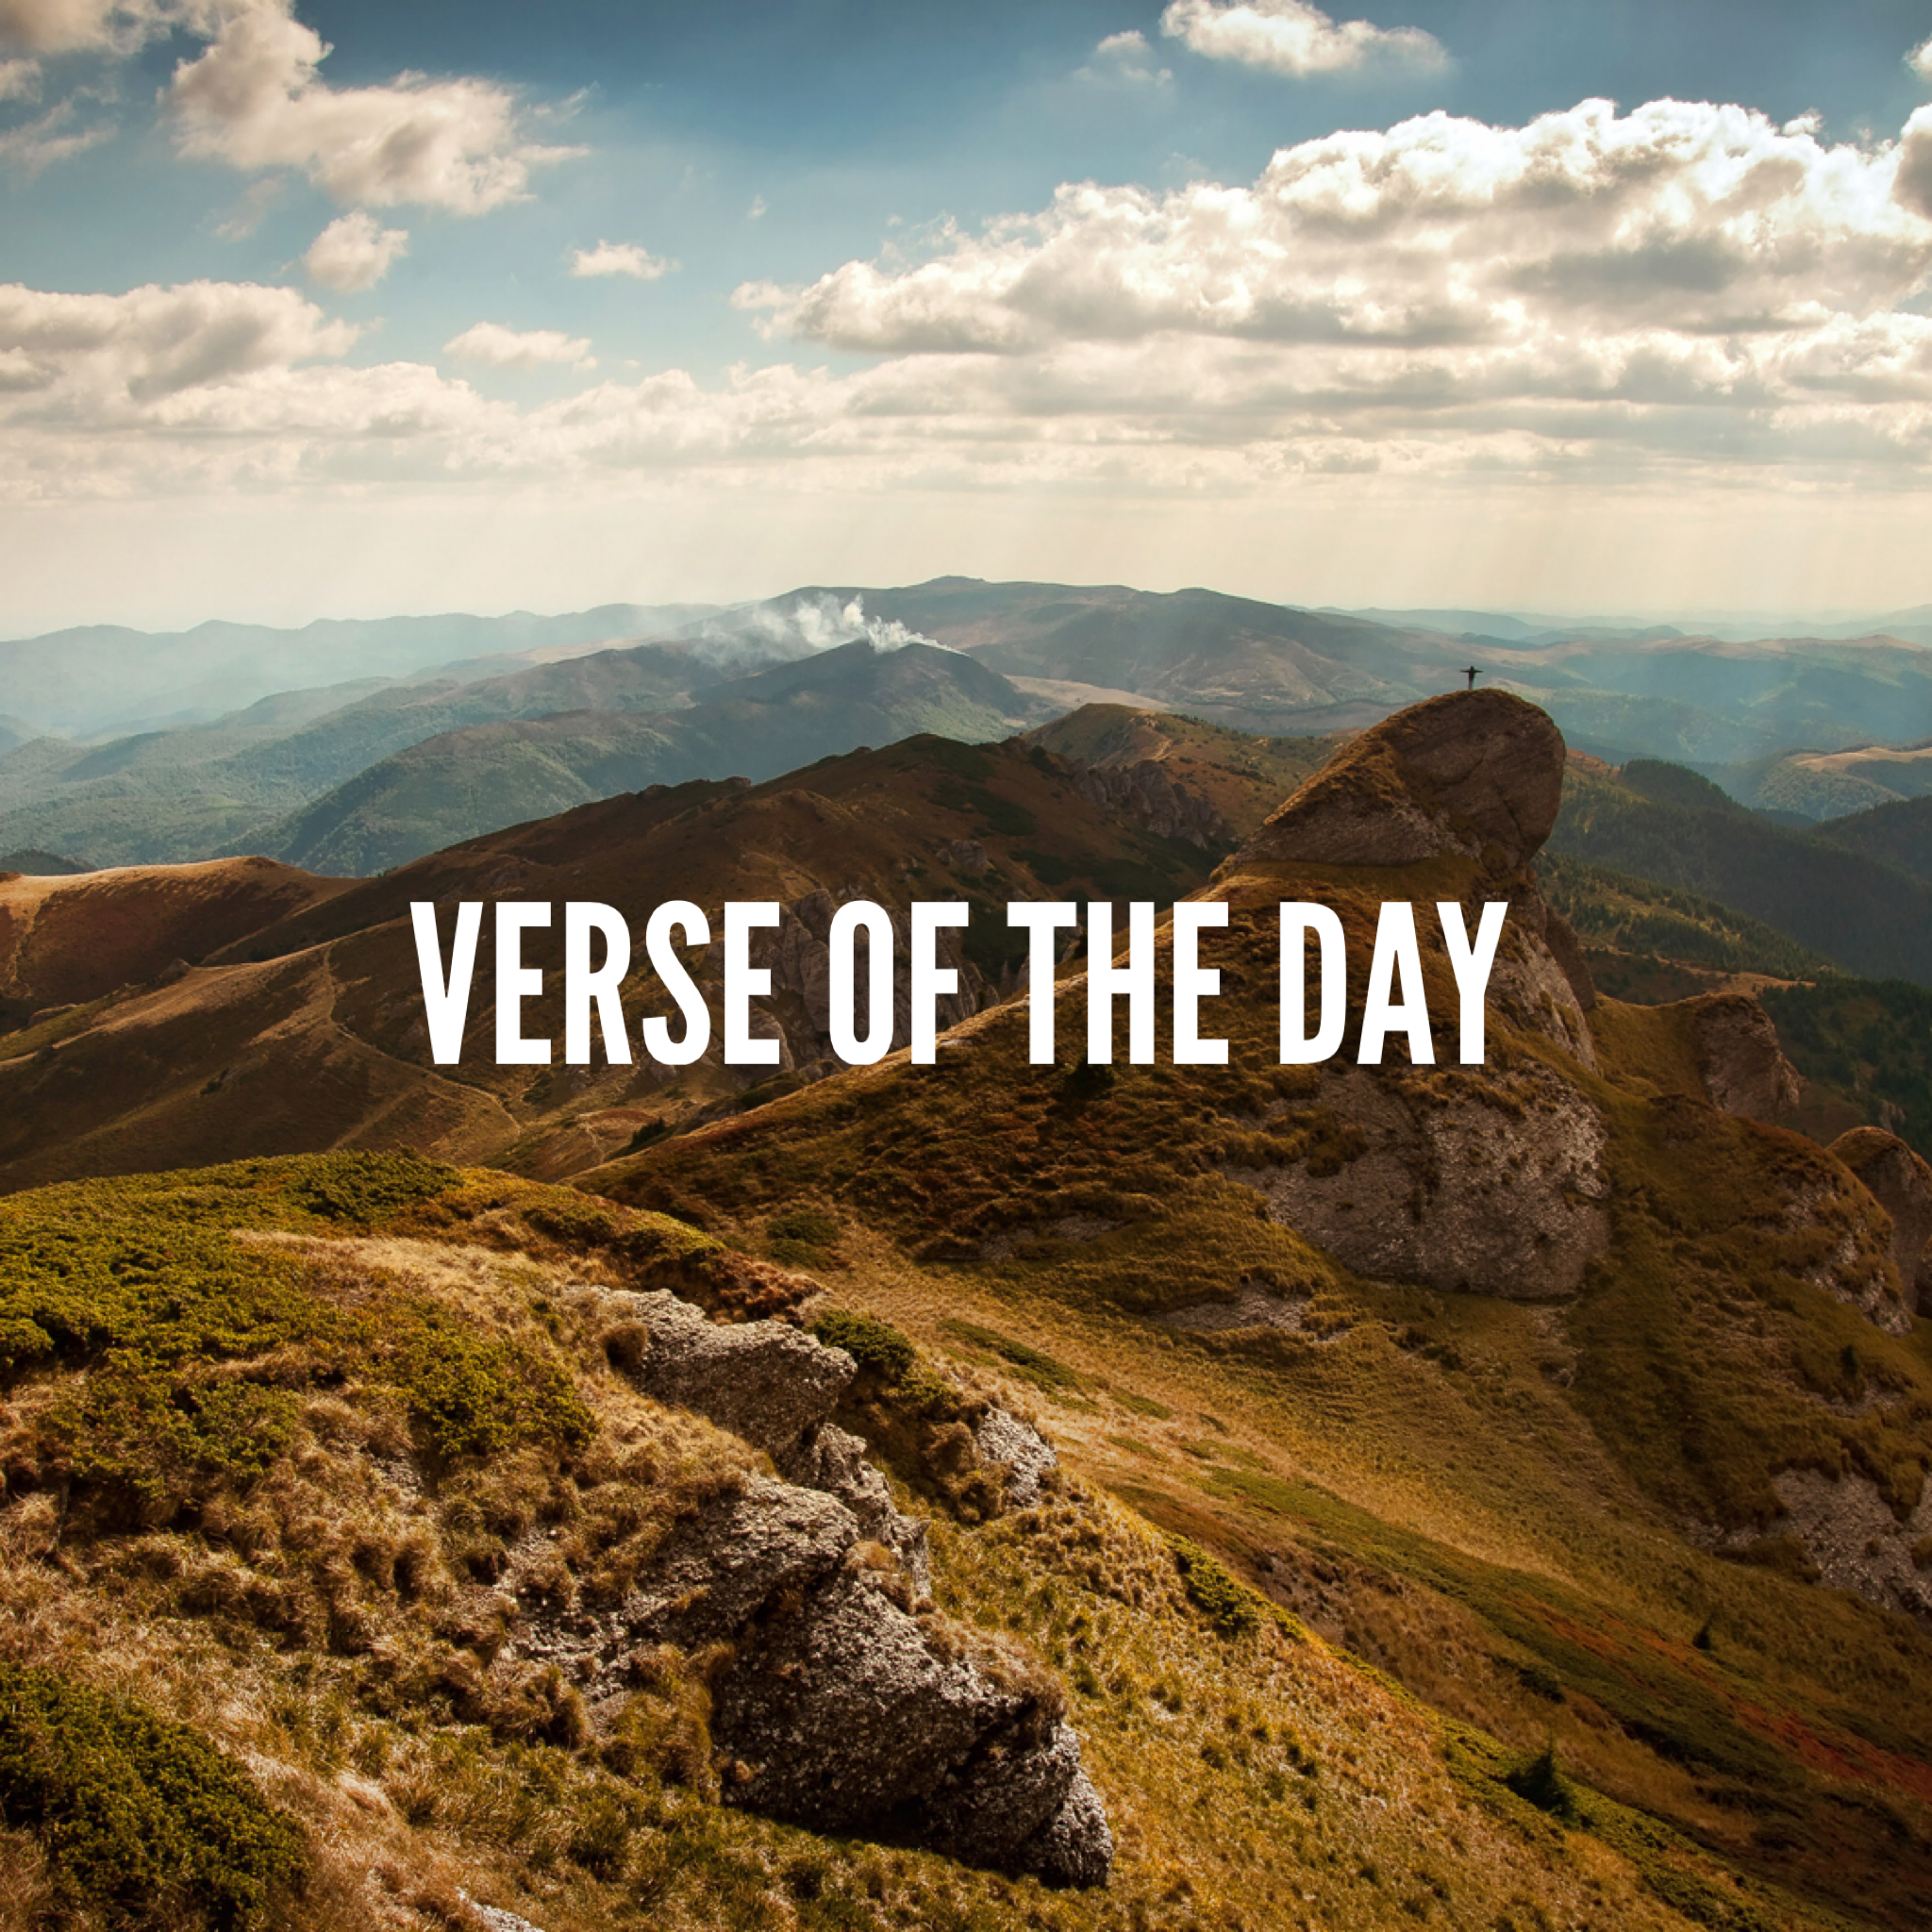 Verse Of The Day - Eden Gate